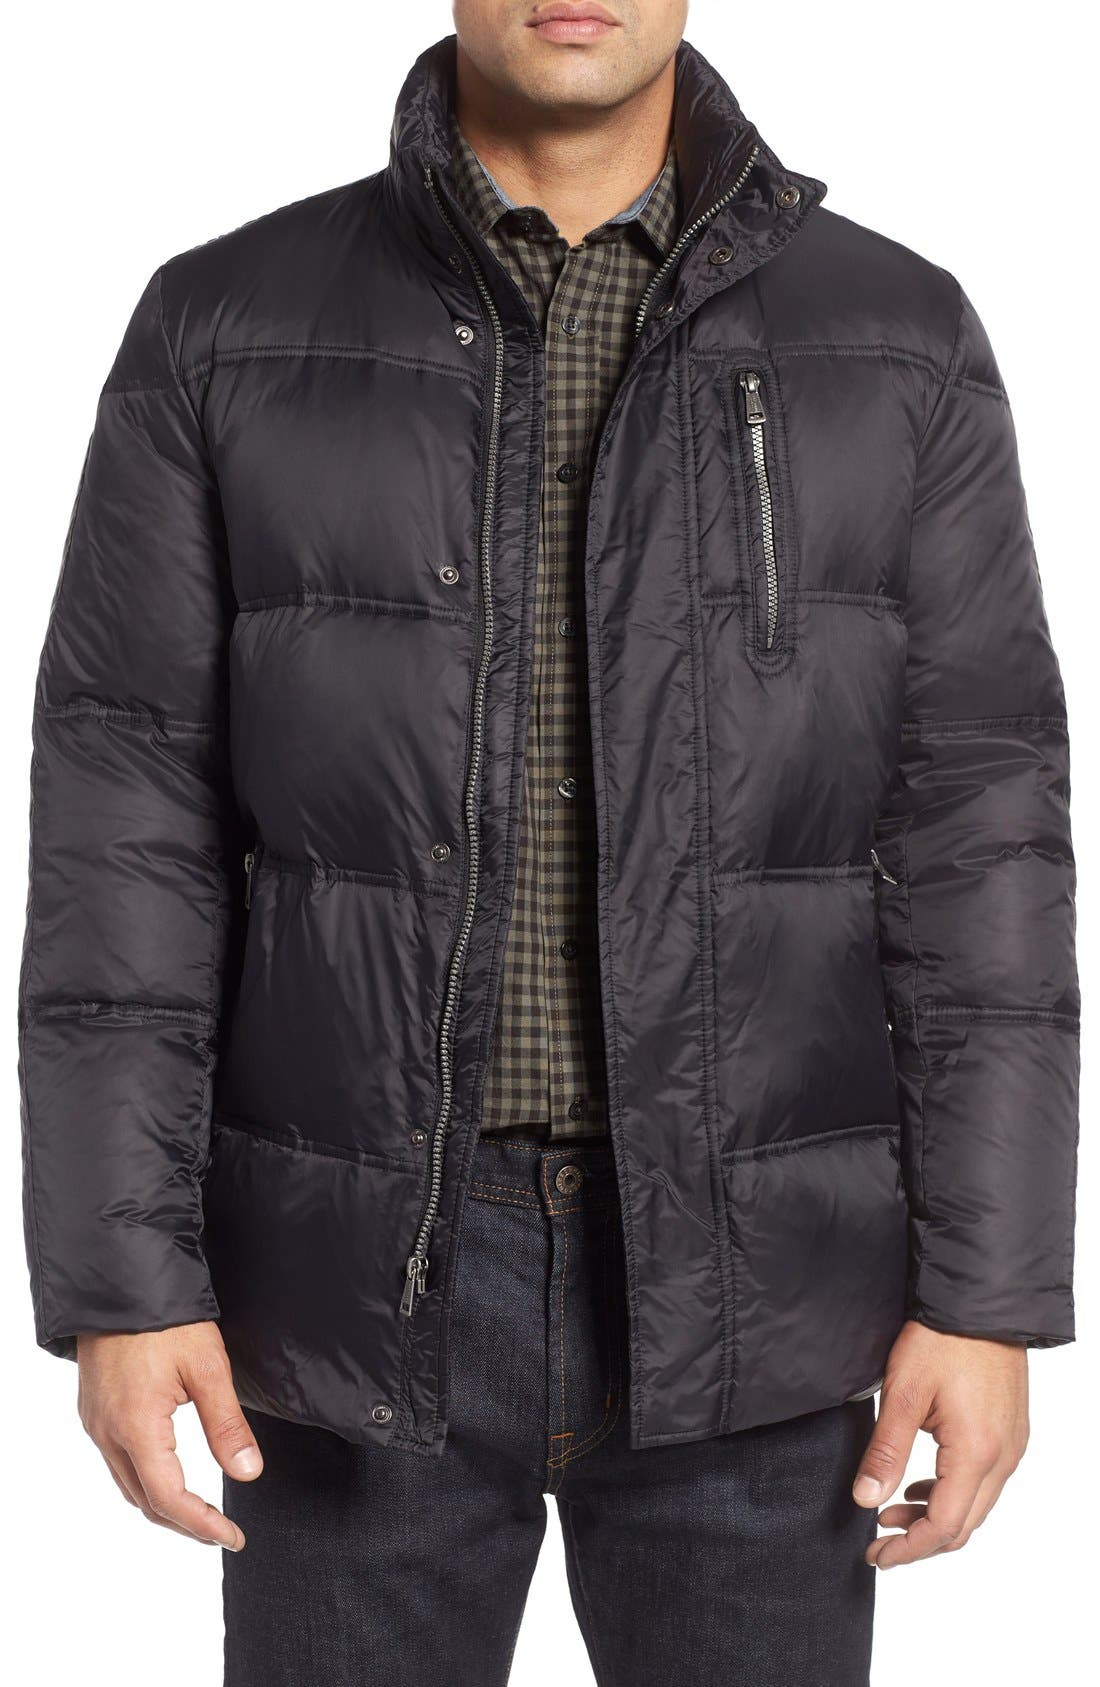 Quilted Jacket with Convertible Neck Pillow,                         Main,                         color, Black